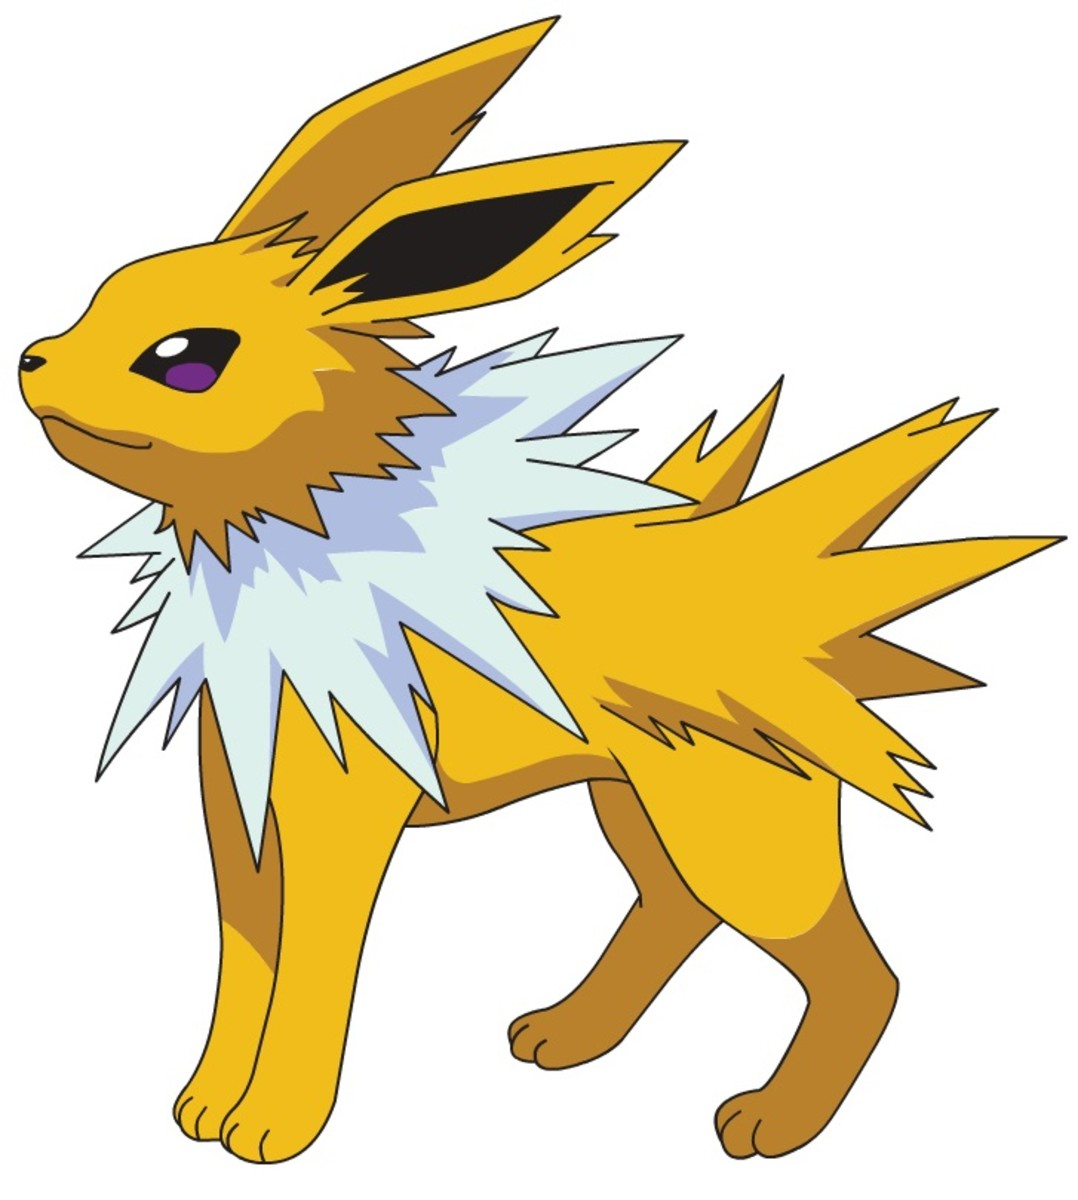 Jolteon is an electric-type eeveelution.